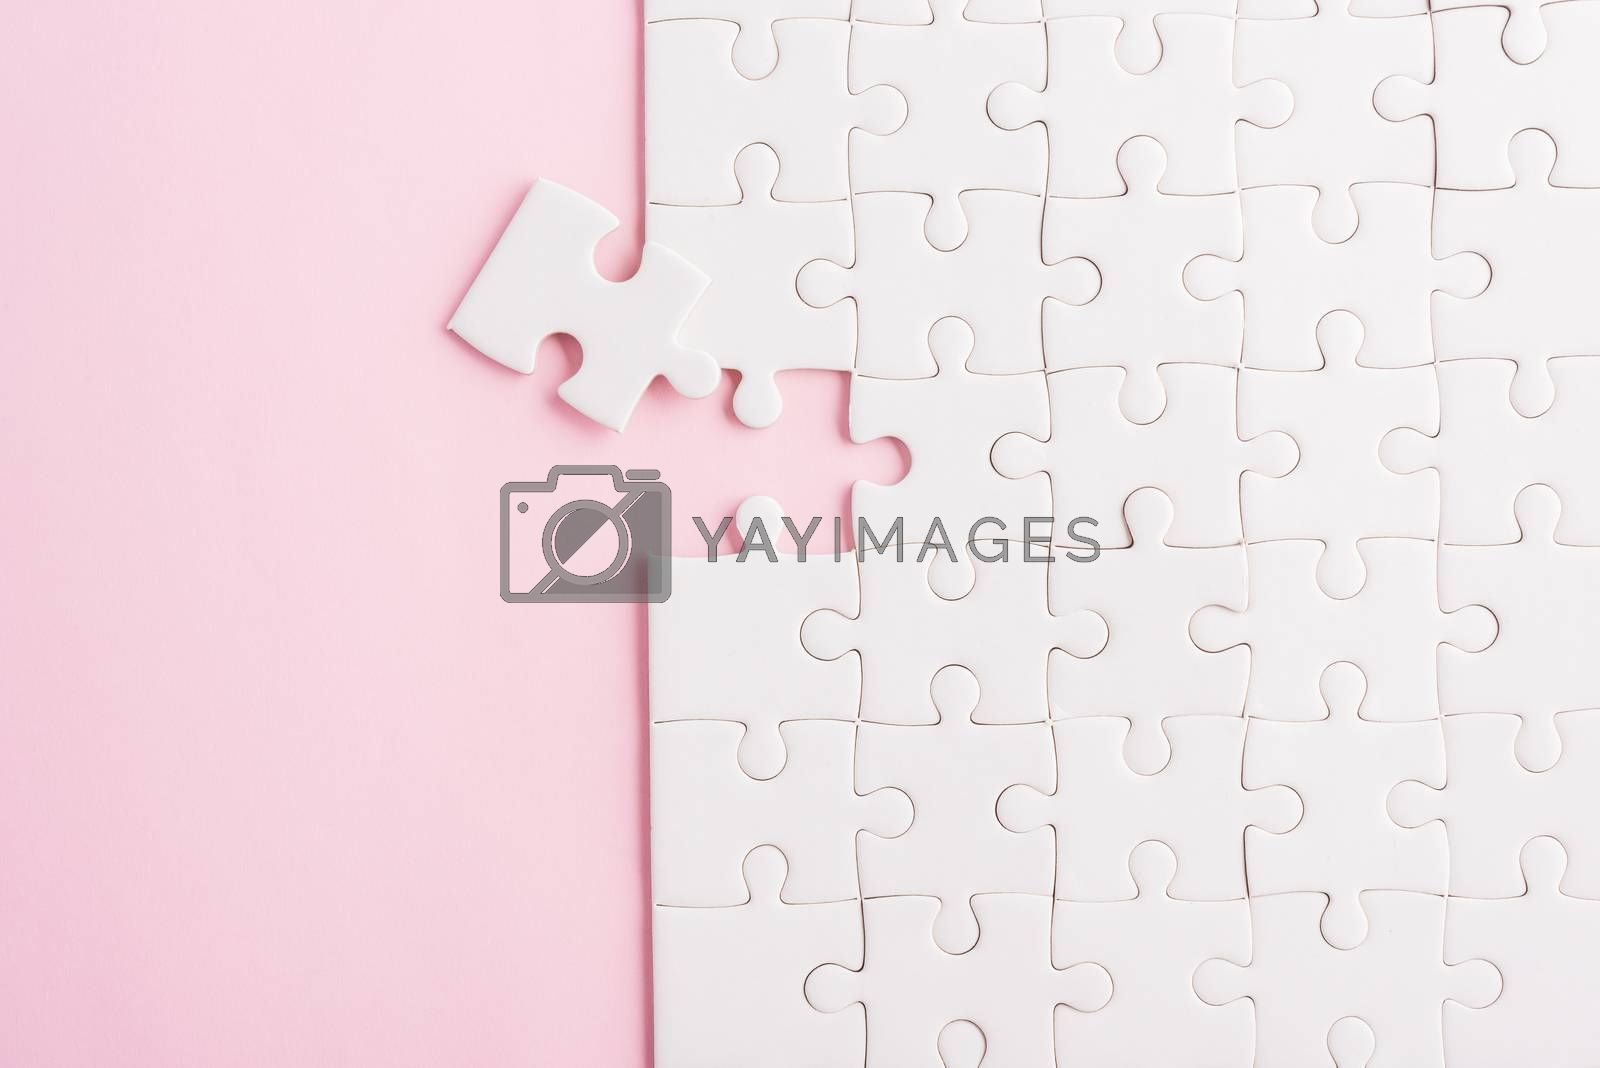 Top view flat lay of paper plain white jigsaw puzzle game texture last pieces for solve and place, studio shot on a pink background, quiz calculation concept